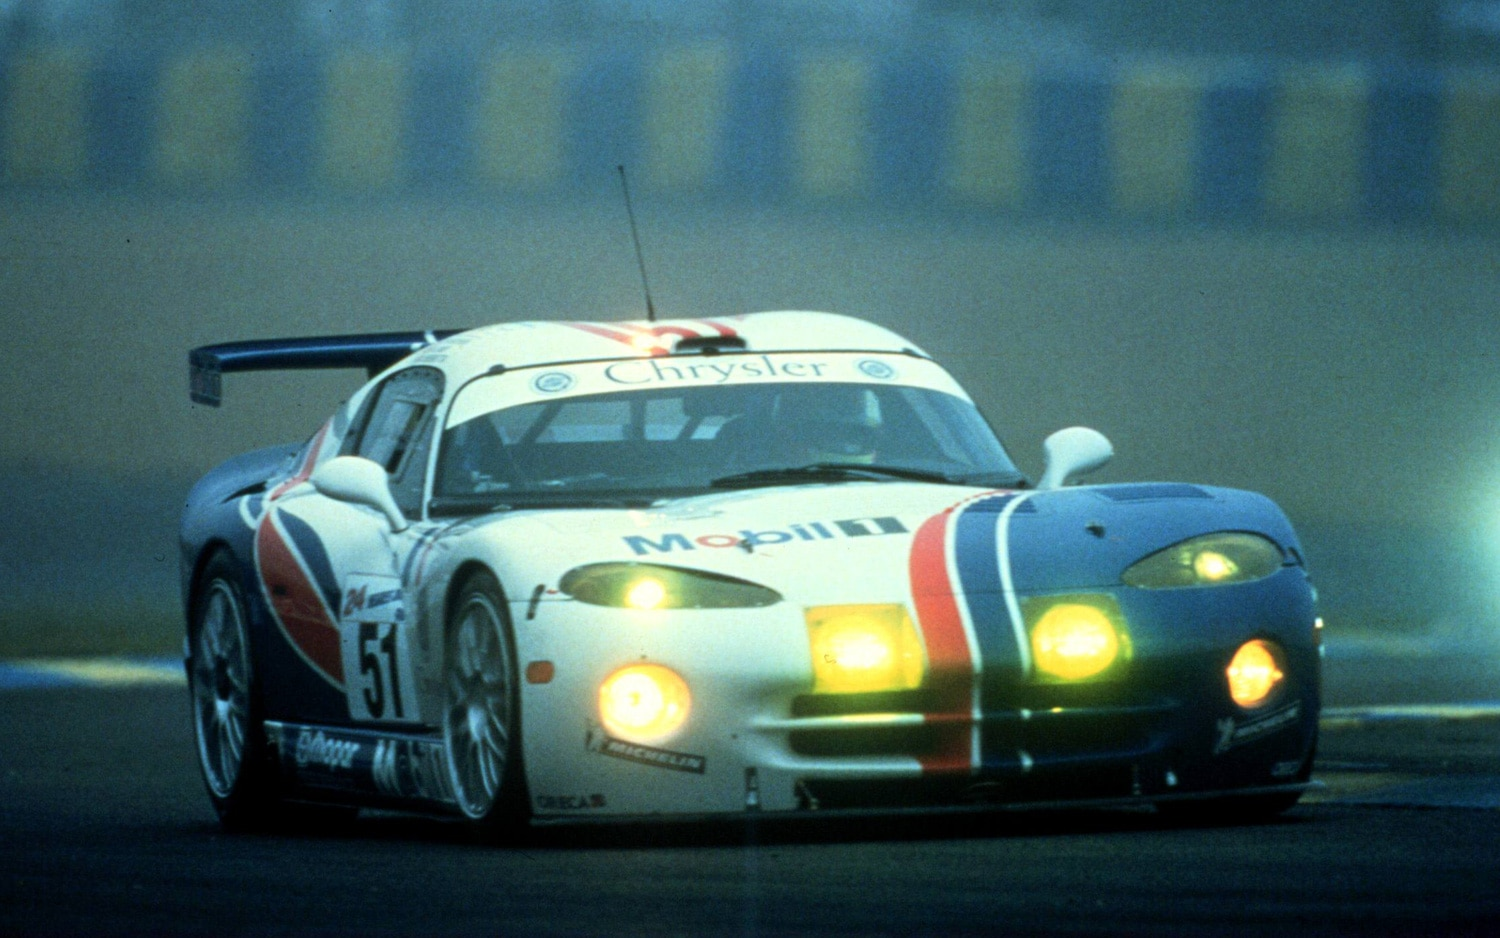 2013 SRT Viper GTS-R: The Latest Chapter In Viper Racing